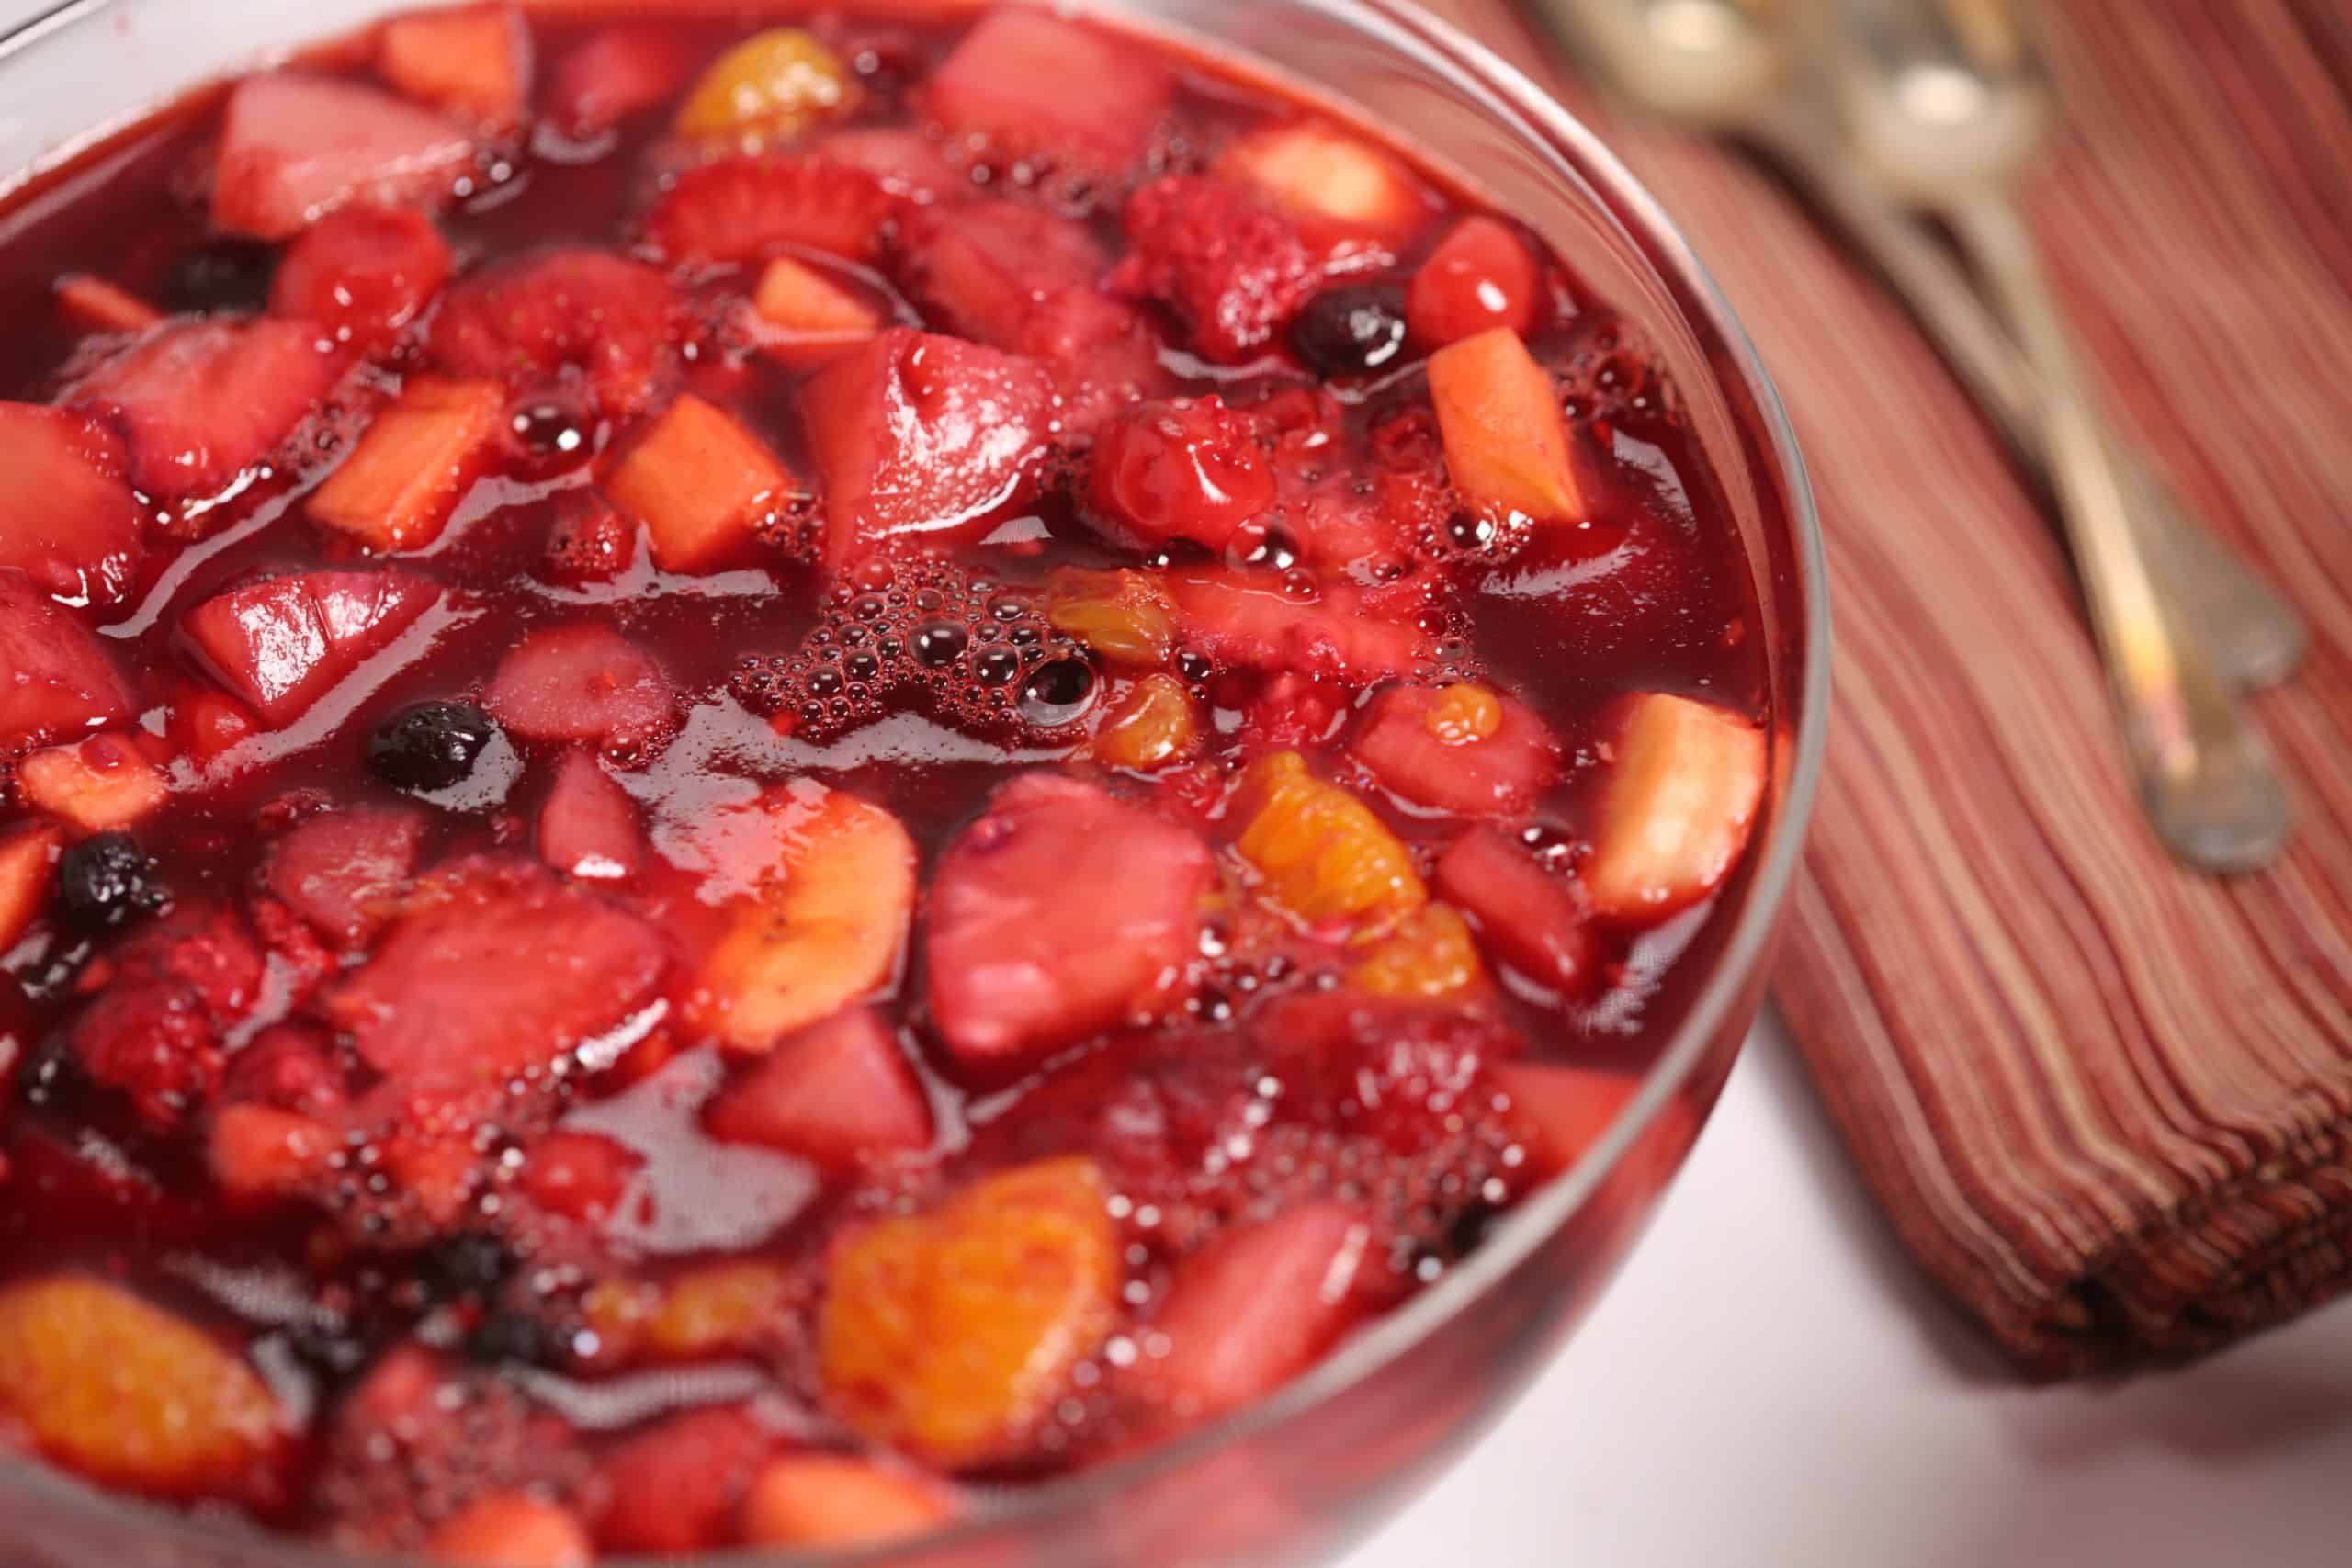 Large Clear Bowl of Cherry Jello with Fruit